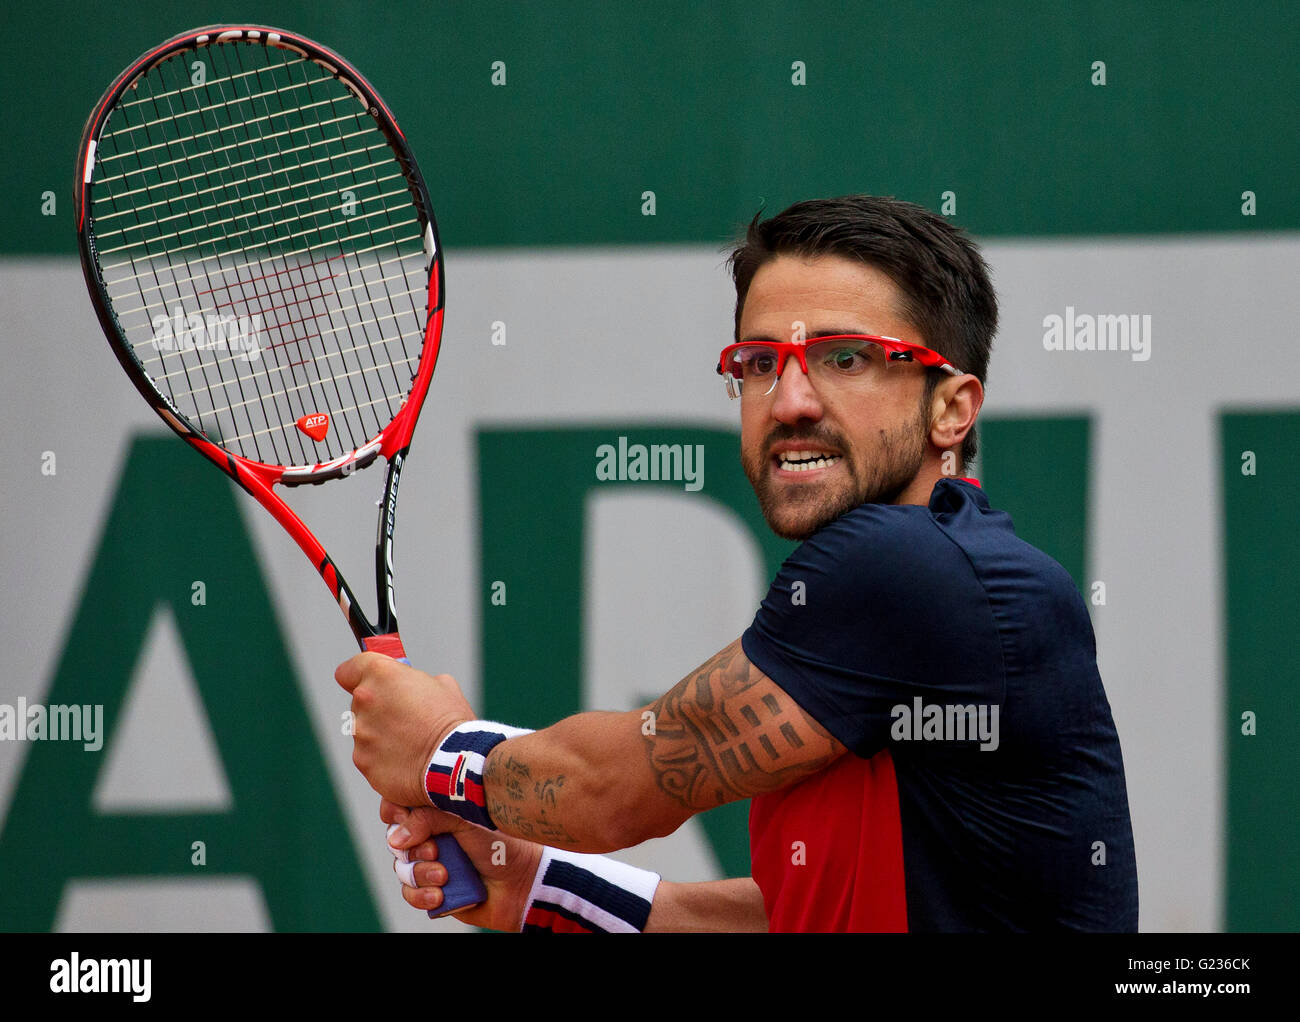 Paris, France, 23 june, 2016, Tennis, Roland Garros, Janko Tipsarevic (KAZ) Photo: Henk Koster/tennisimages.com/Alamy - Stock Image